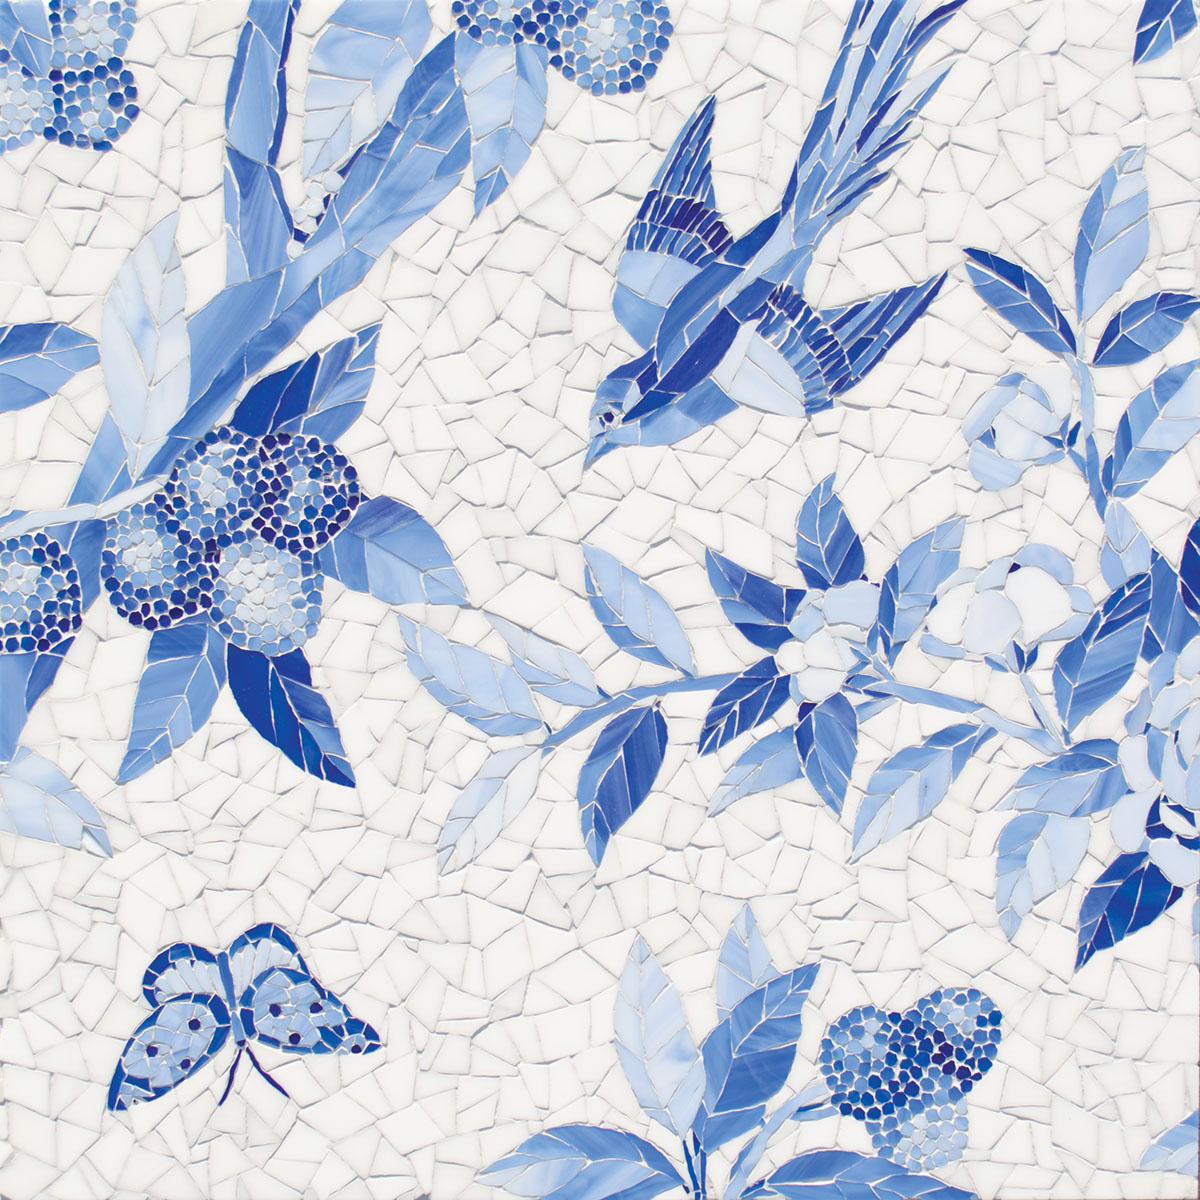 blue-and-white wall mosaic depicting butterflies, birds, and leafy stems of berries from New Ravenna's collaboration with Gracie Studio